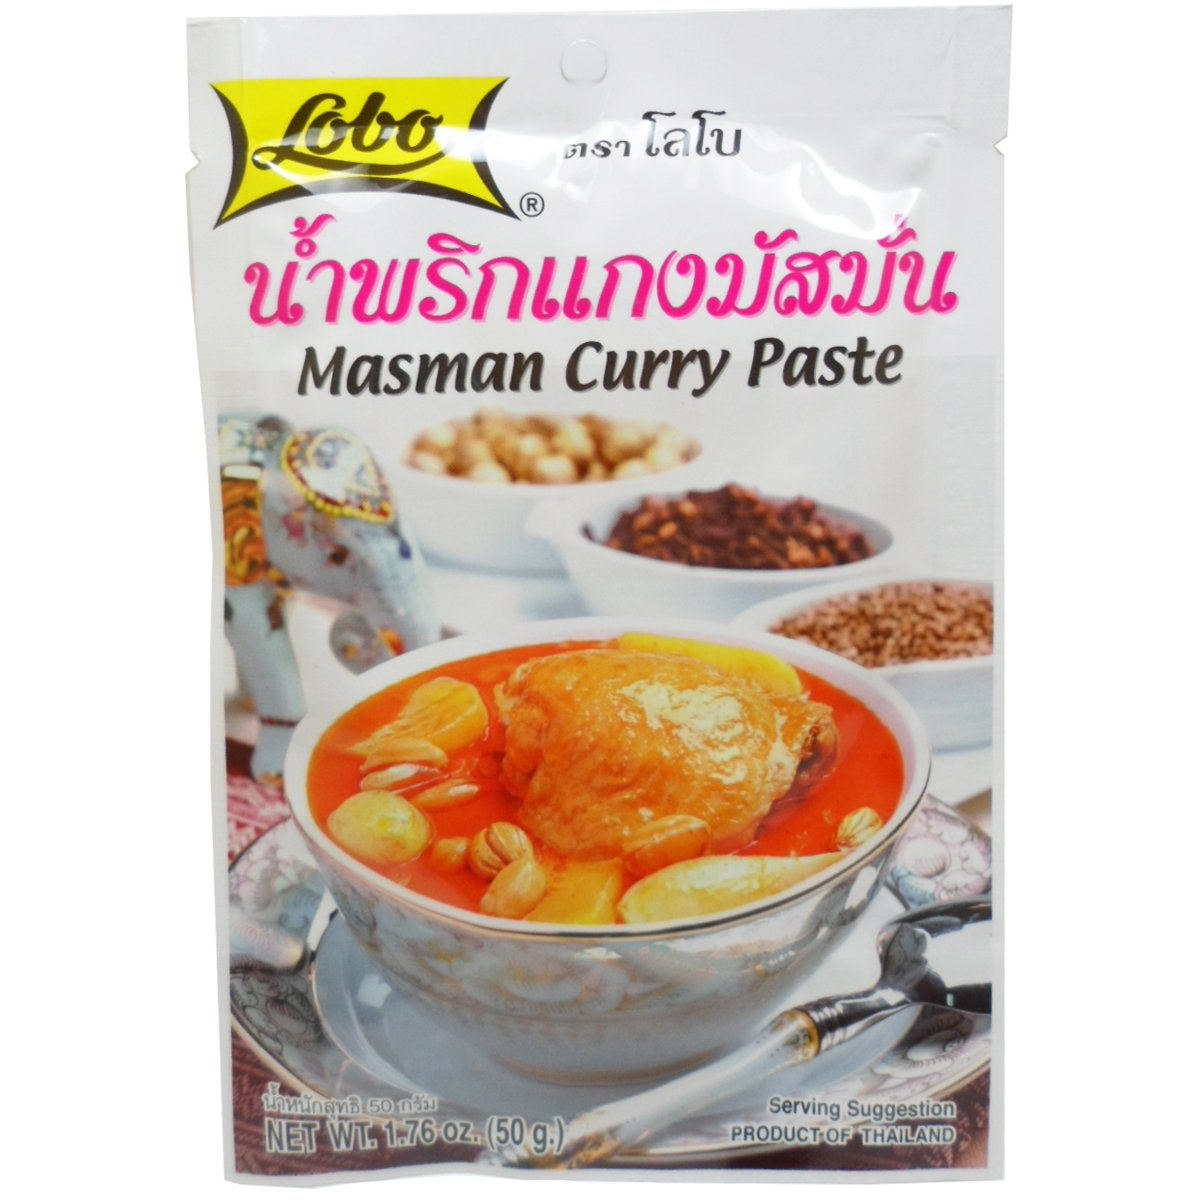 Lobo Masman Curry Paste 50 G (1.76 Oz.) Thai Herbal Food X 9 Bags by Lobo